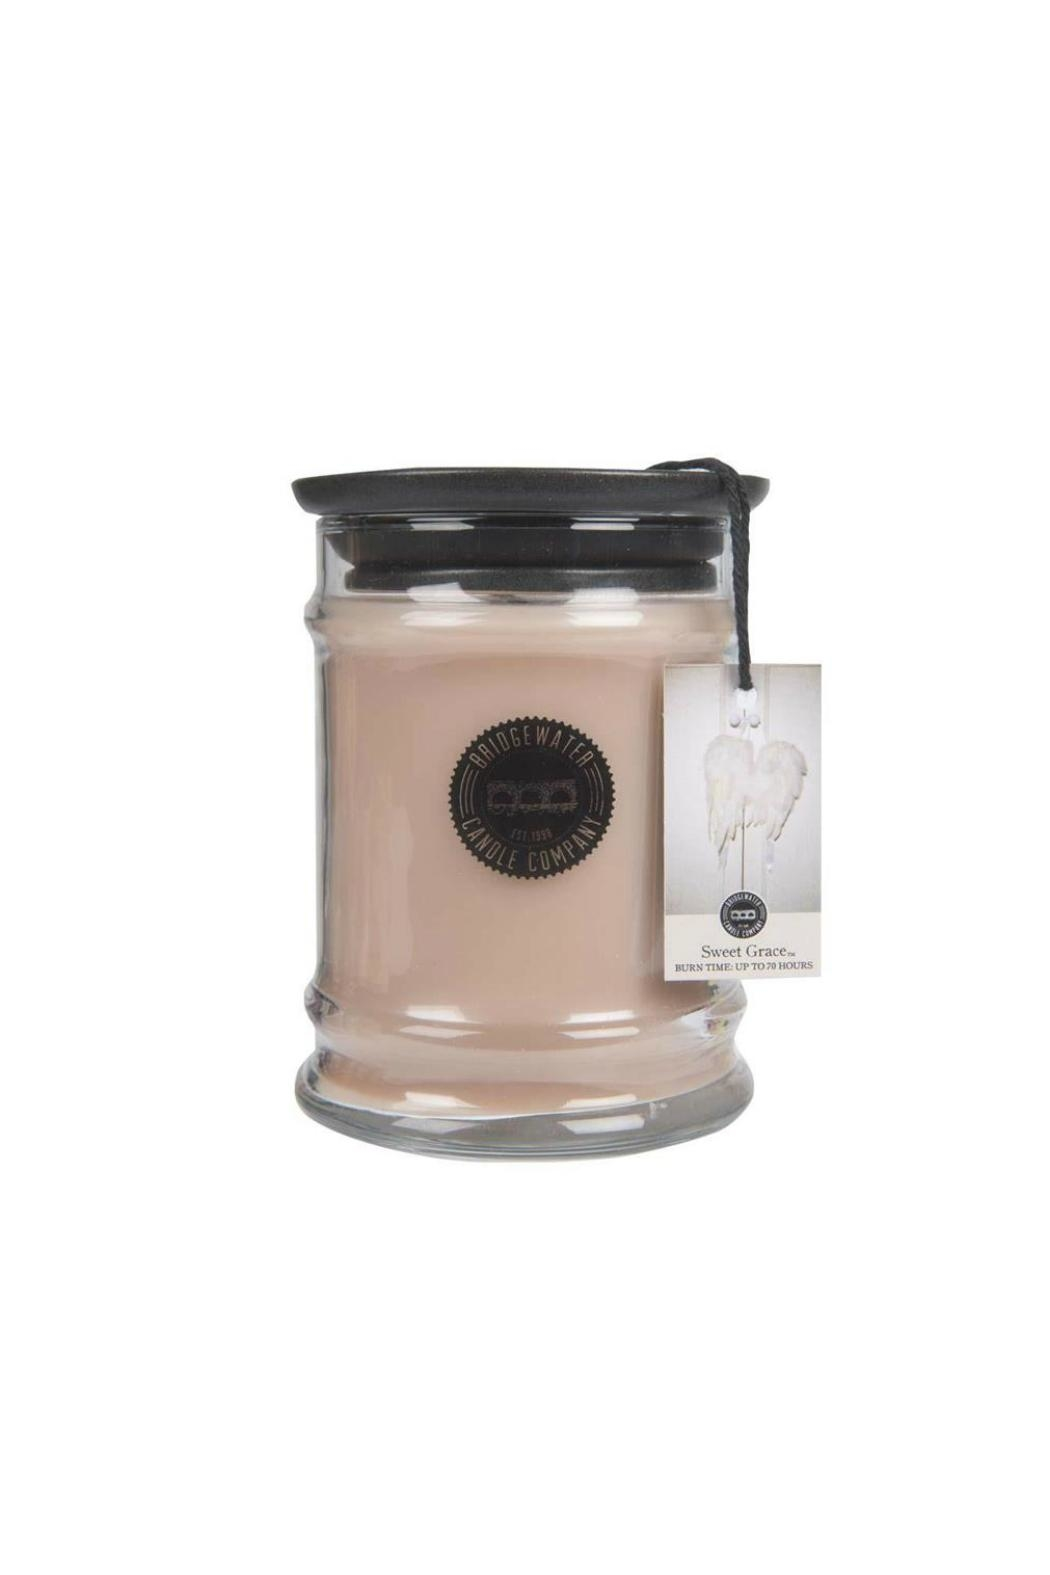 Bridgewater Candle Company Sweetgrace Jar Candle from